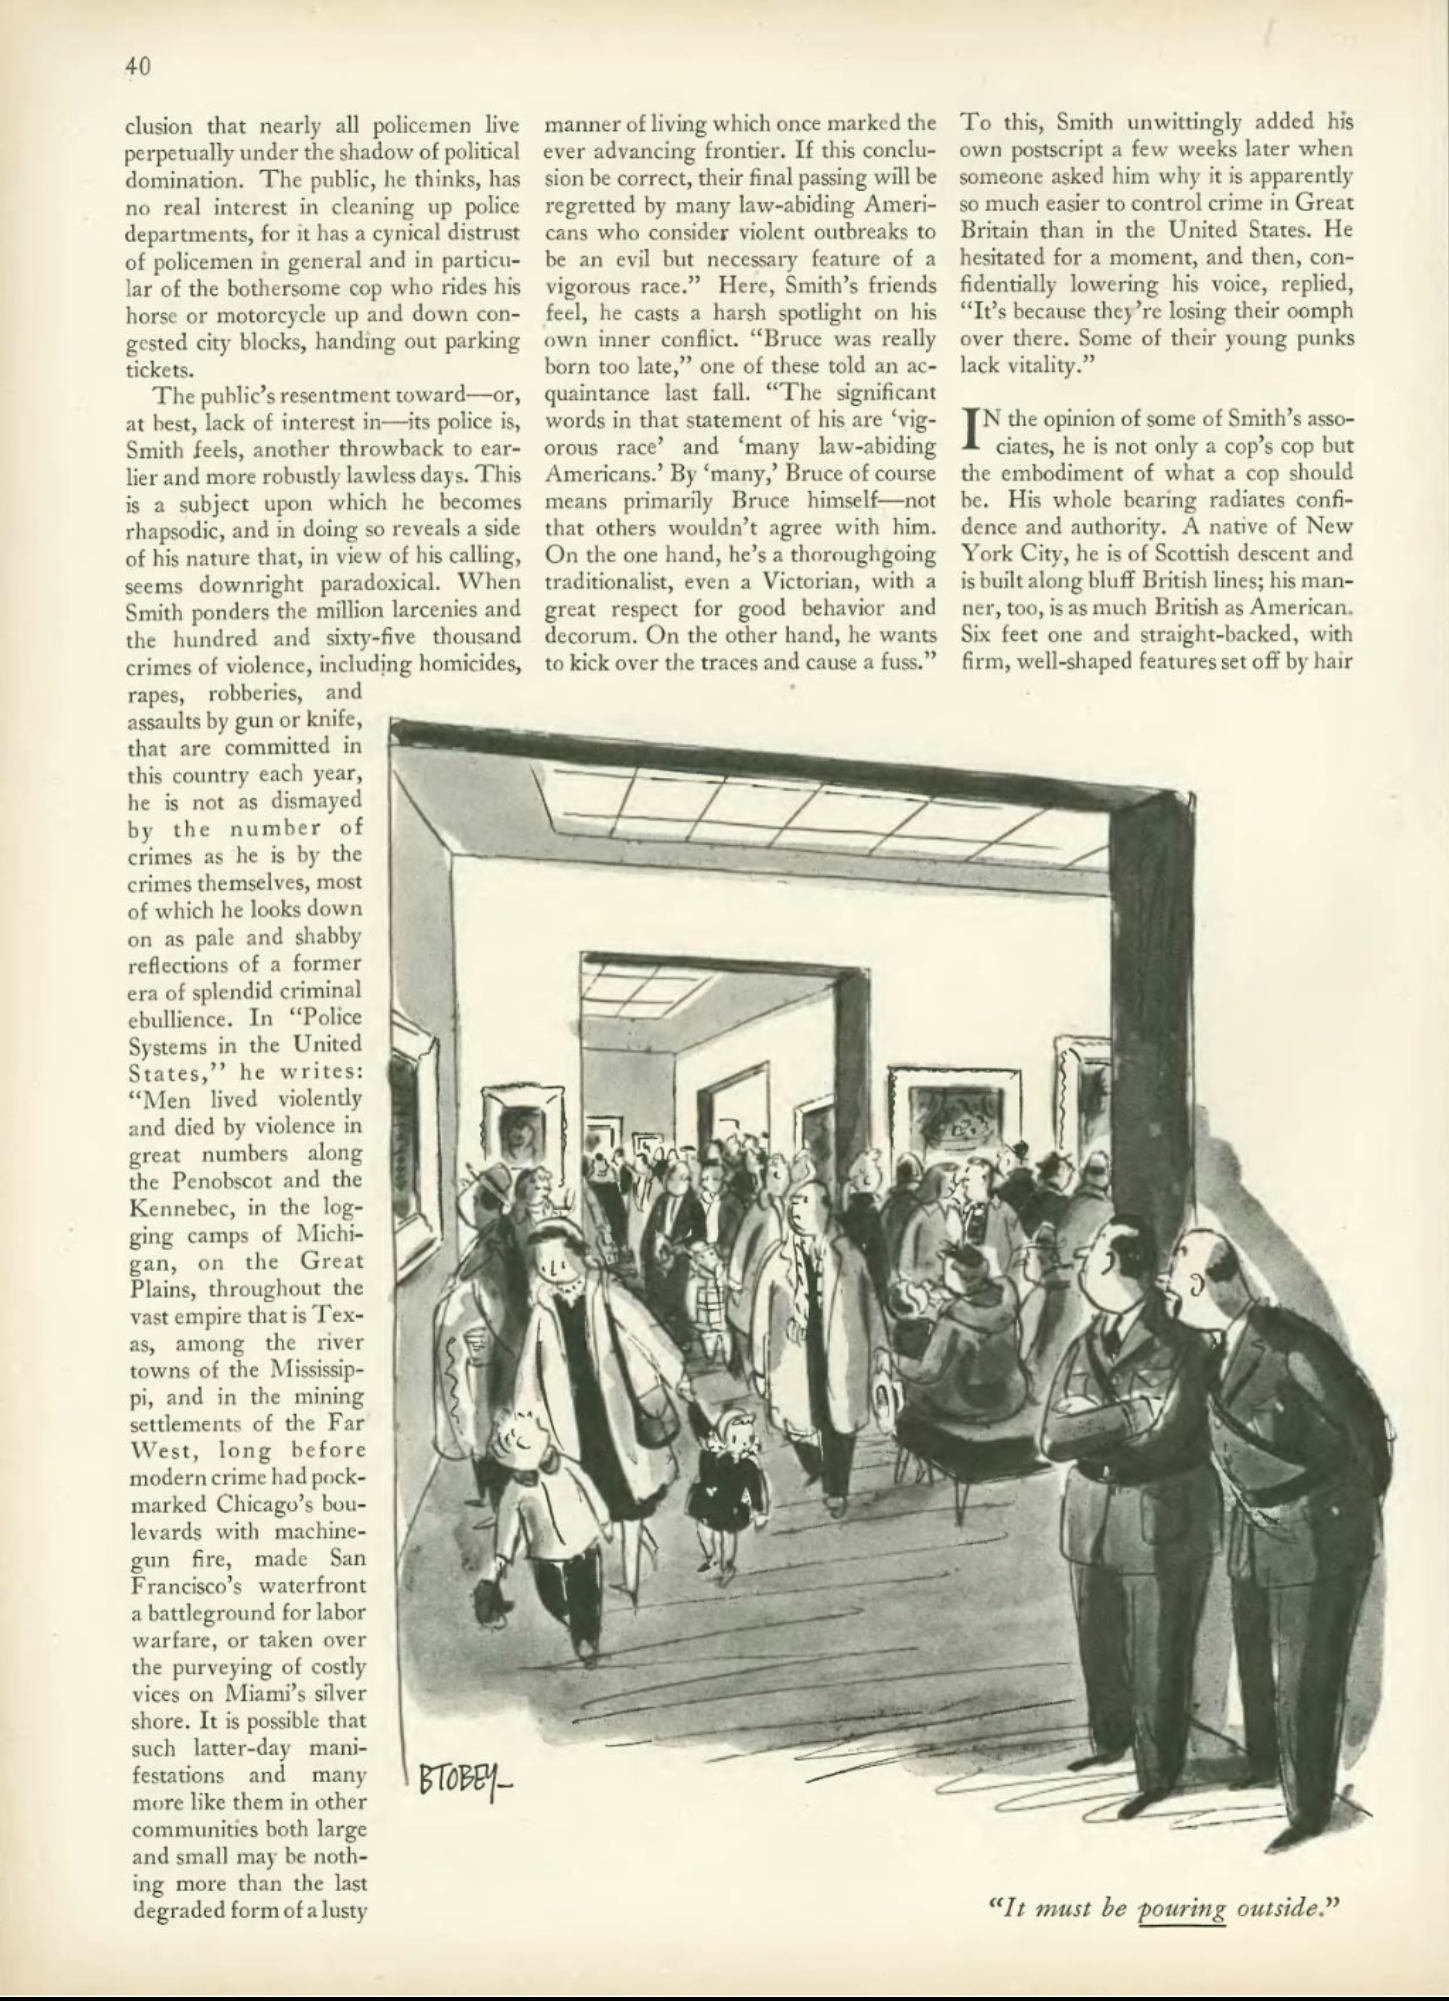 Bruce Smith, Police, The New Yorker, Feb 27, 1954